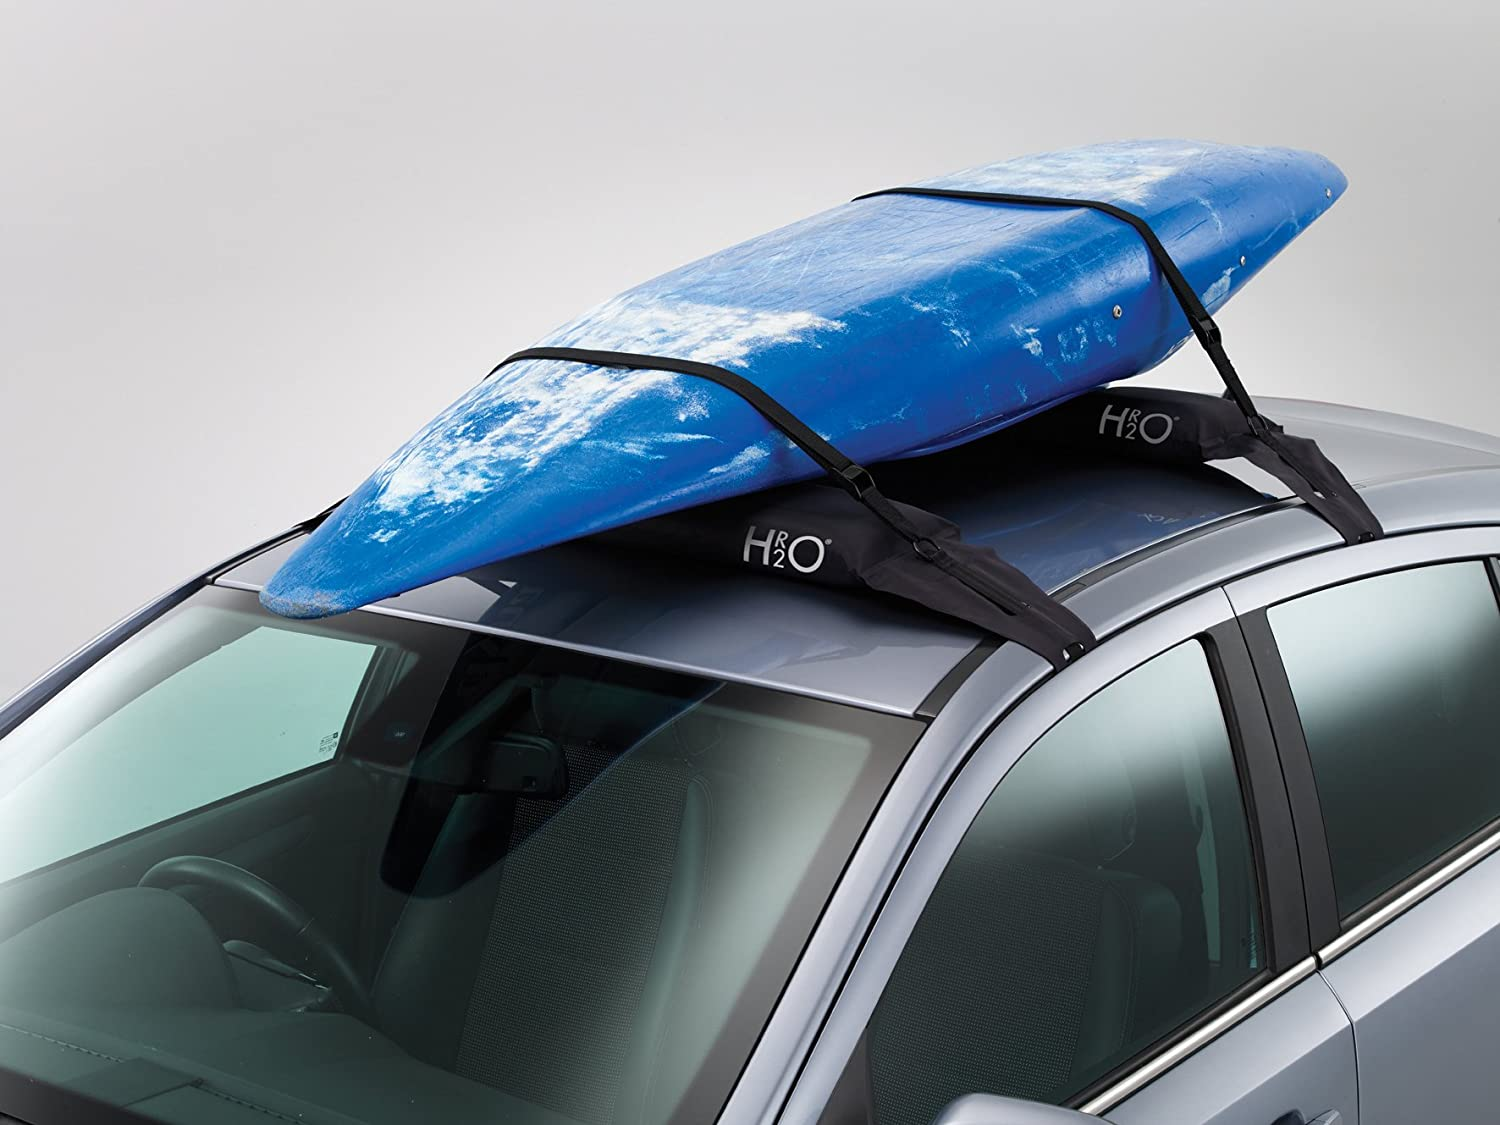 Amazon.com : Malone Auto HR20 Inflatable Roof Rack : Surfboard Car Racks : Sports & Outdoors